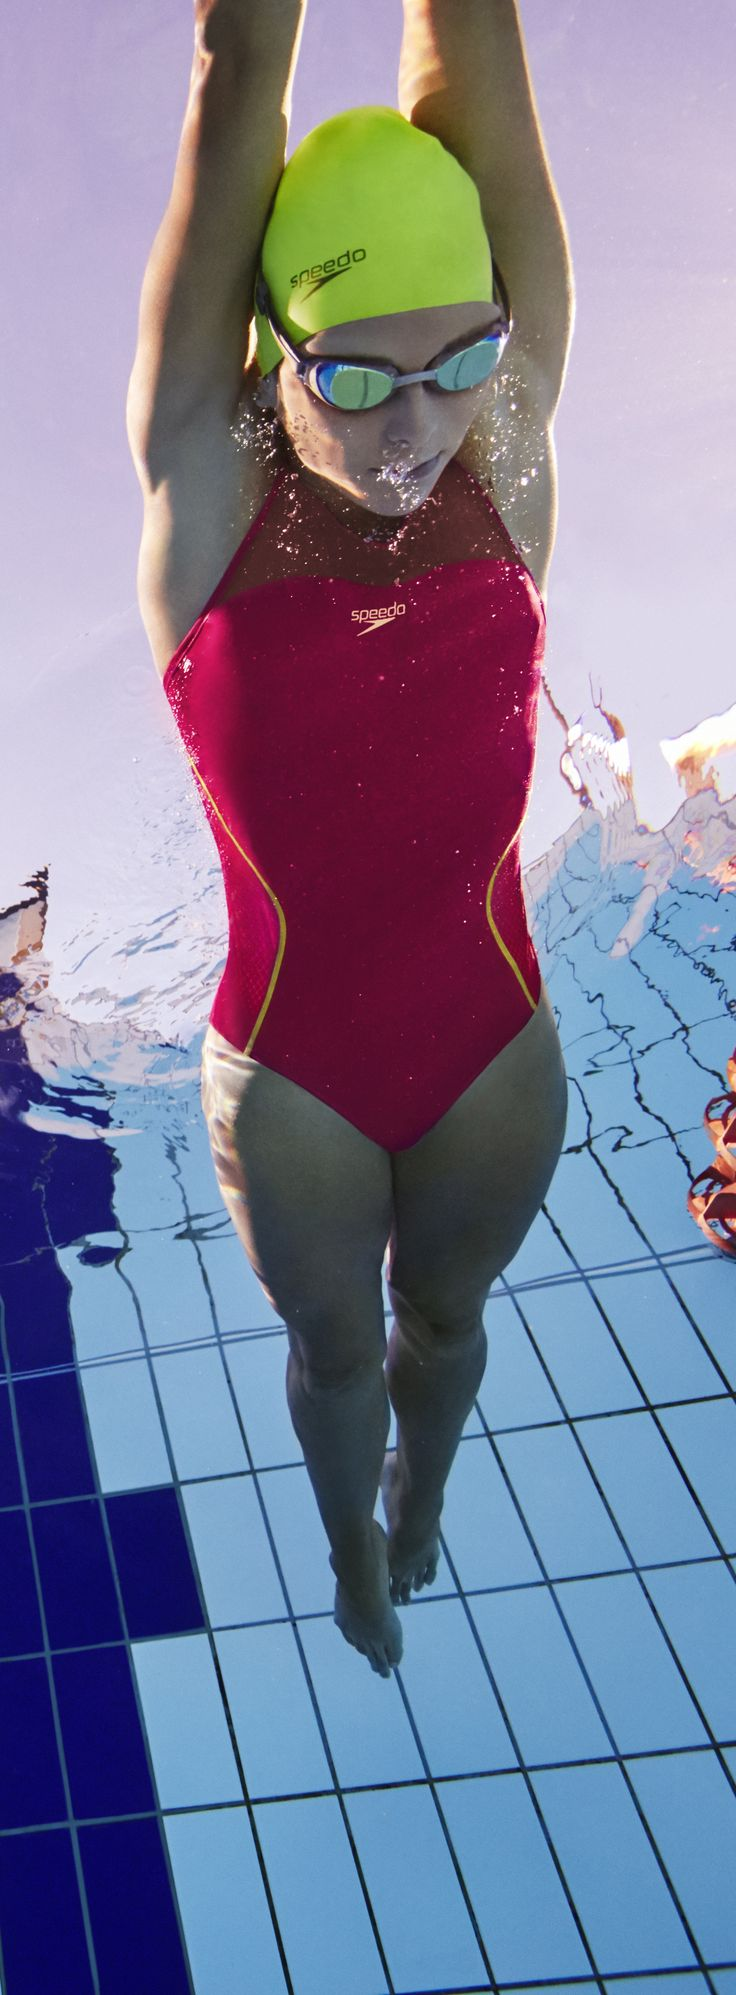 This suit includes seams inspired by the Fastskin LZR Racer X race suit, and an X back for improved comfort. Available from > http://www.speedostore.com/women/women-all-swimsuits/810371.html